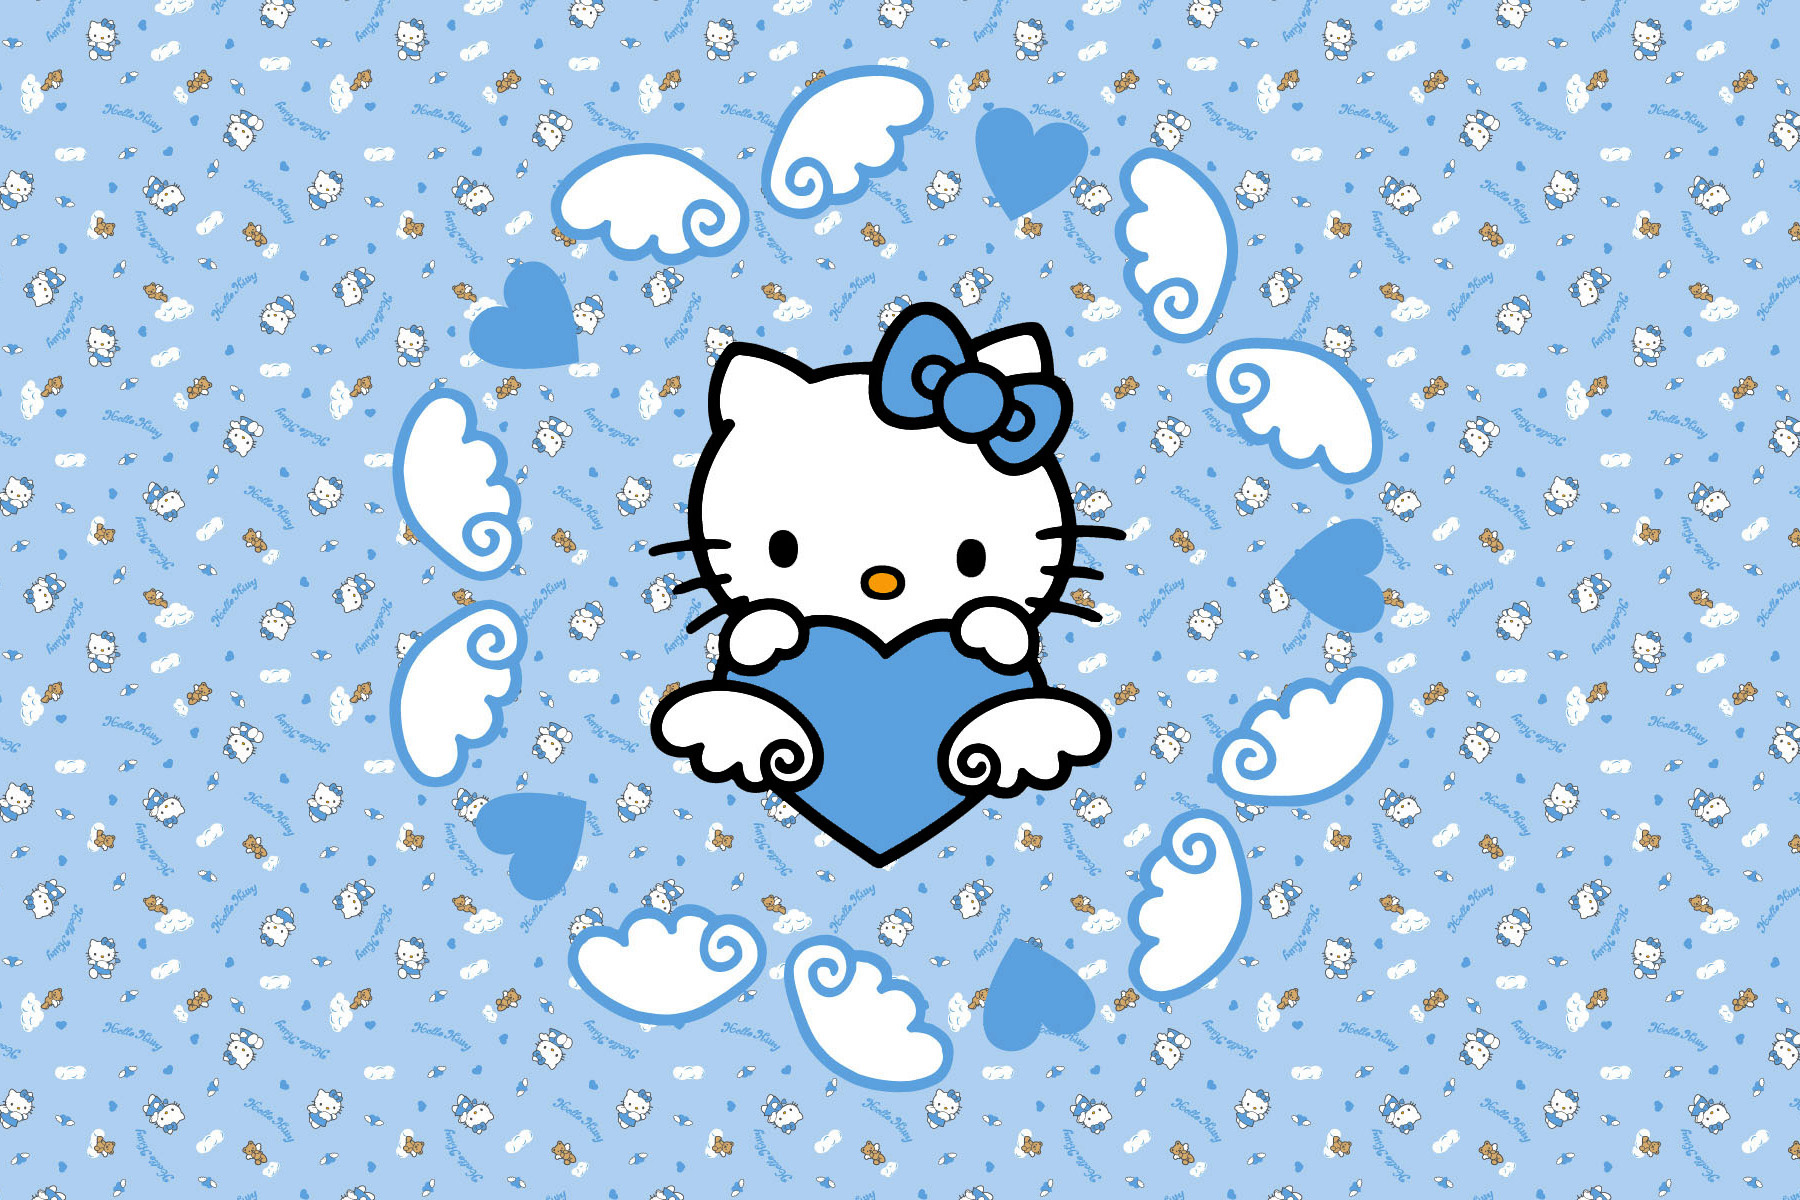 Tron Iphone Wallpaper Hello Kitty And Sanrio Printable Picture Postcards 6 X 4